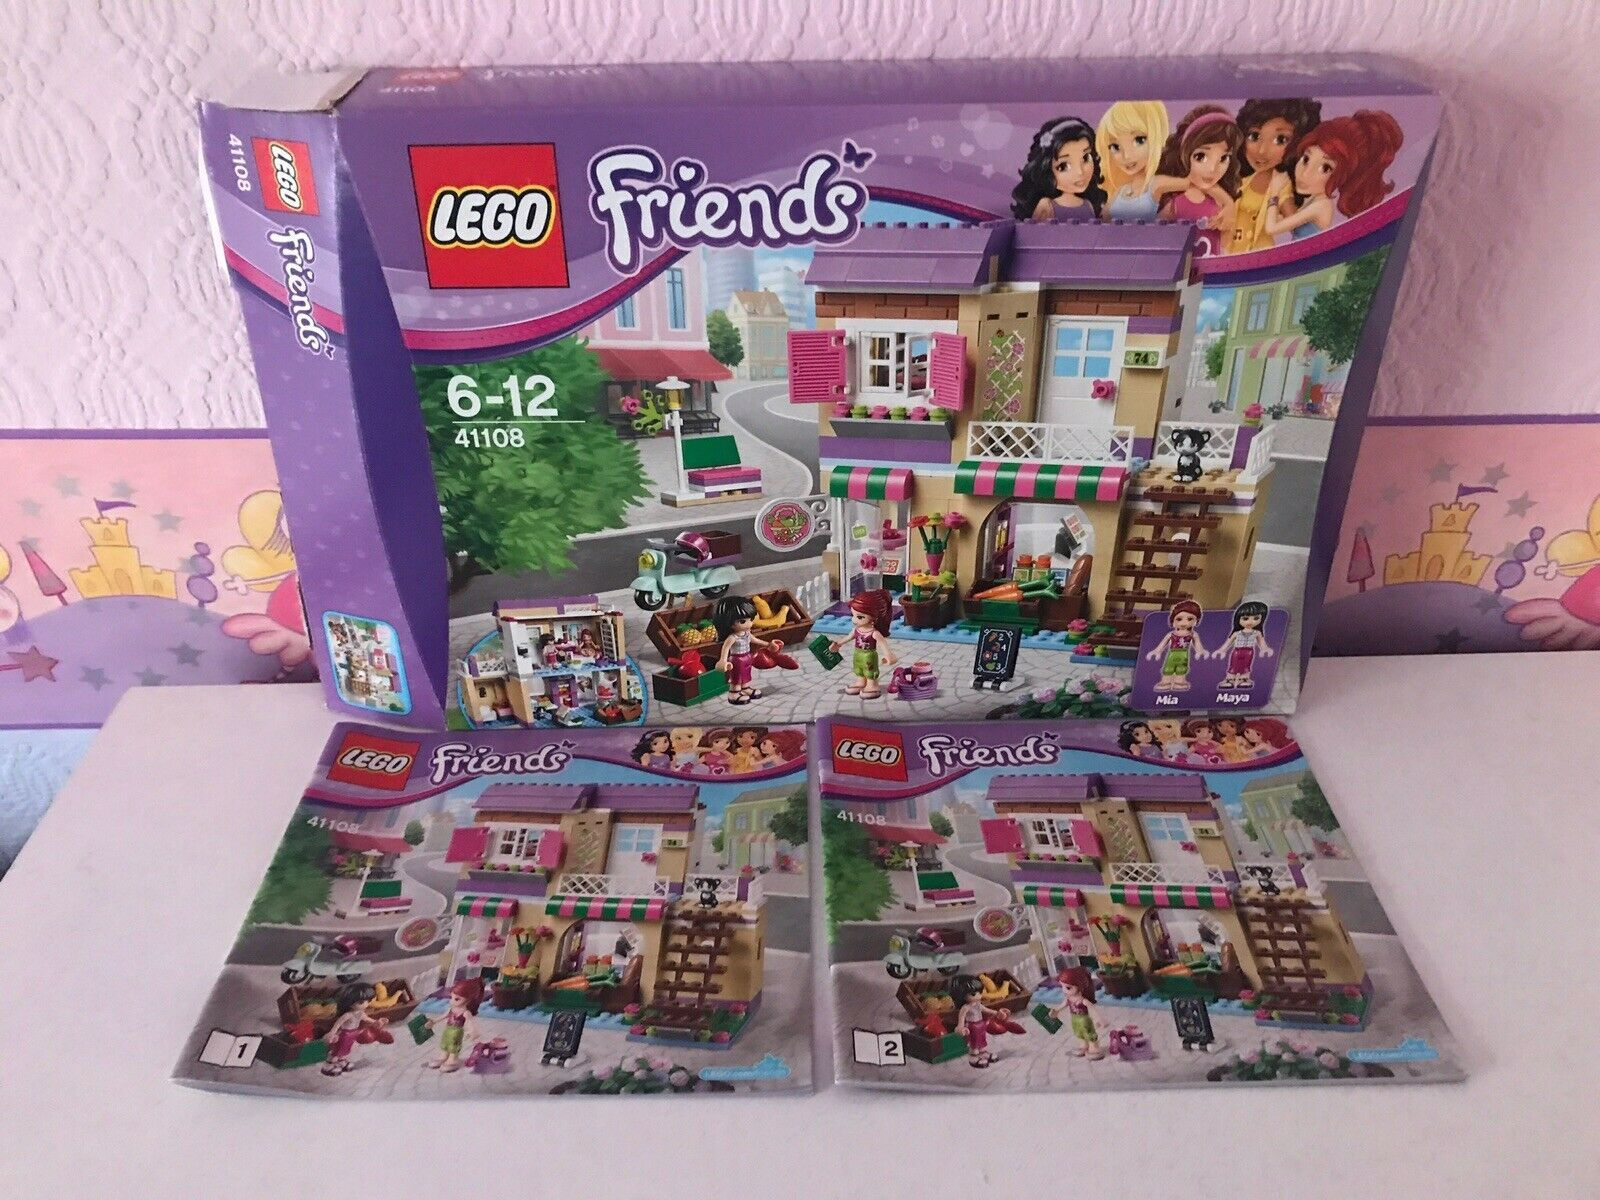 Lego friends sets used 41108 Ith Insructions And Box